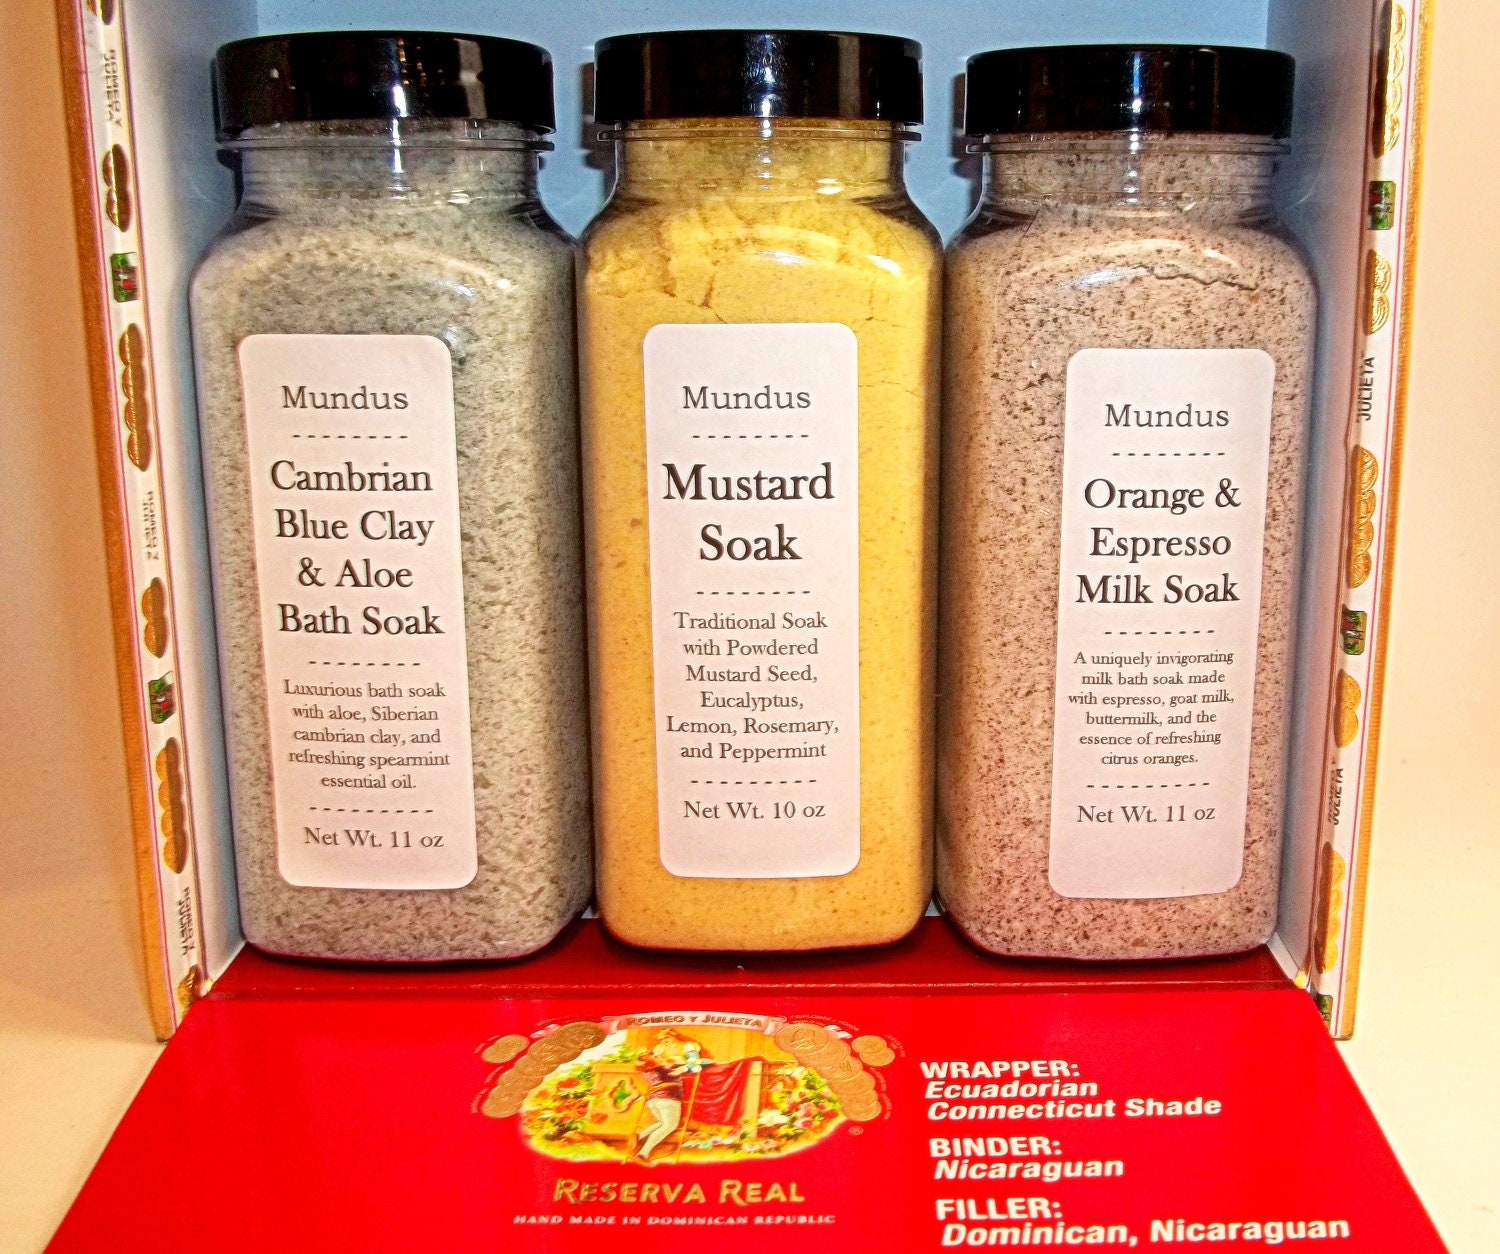 Ultimate Bath Soak Gift Set - Set of 3 in Upcycled Wooden Cigar Box - Mundus